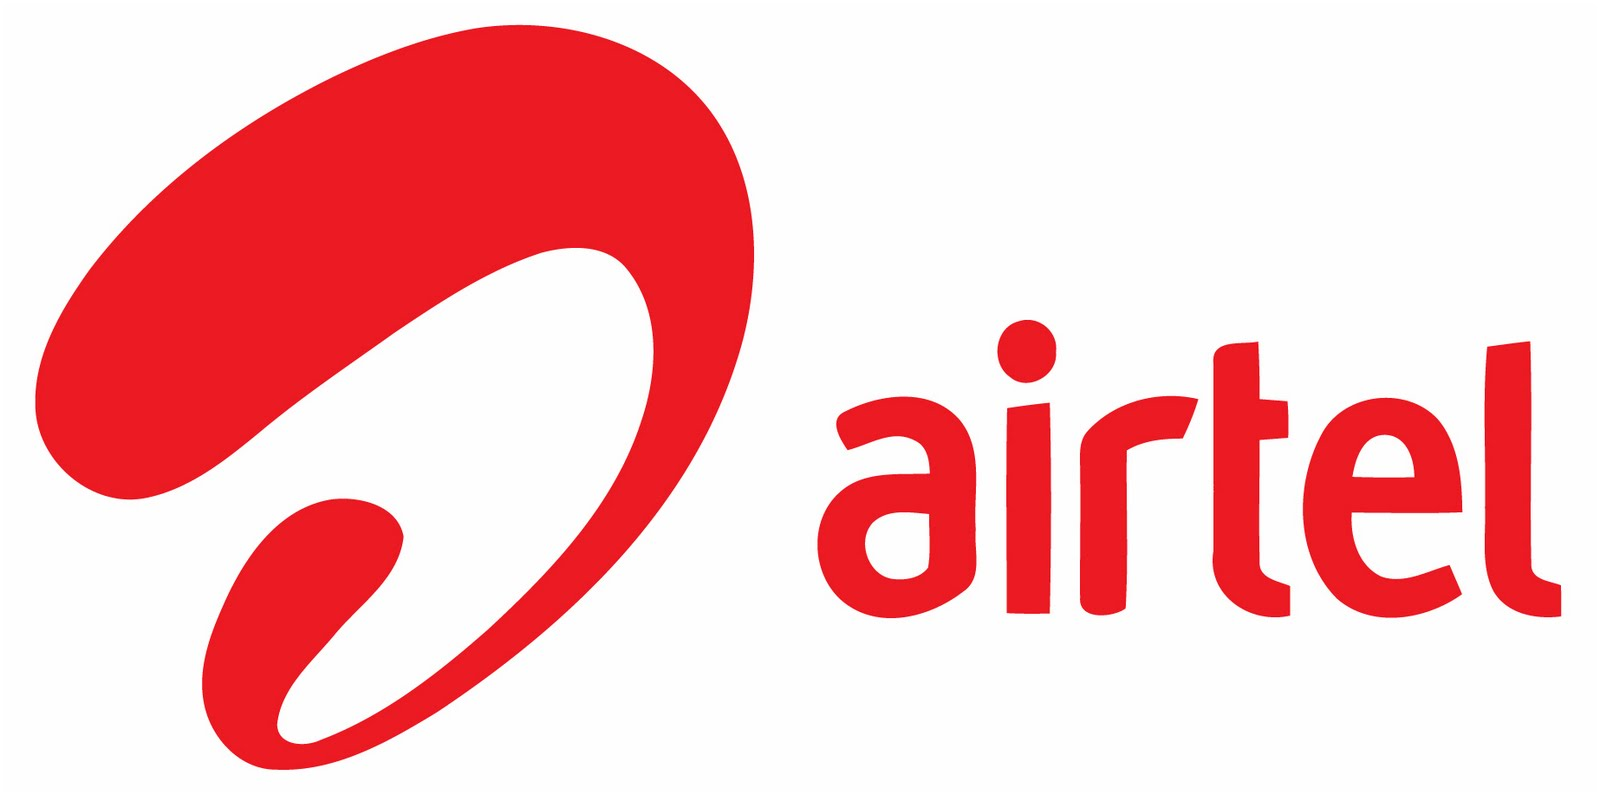 Aircel logo wallpapers